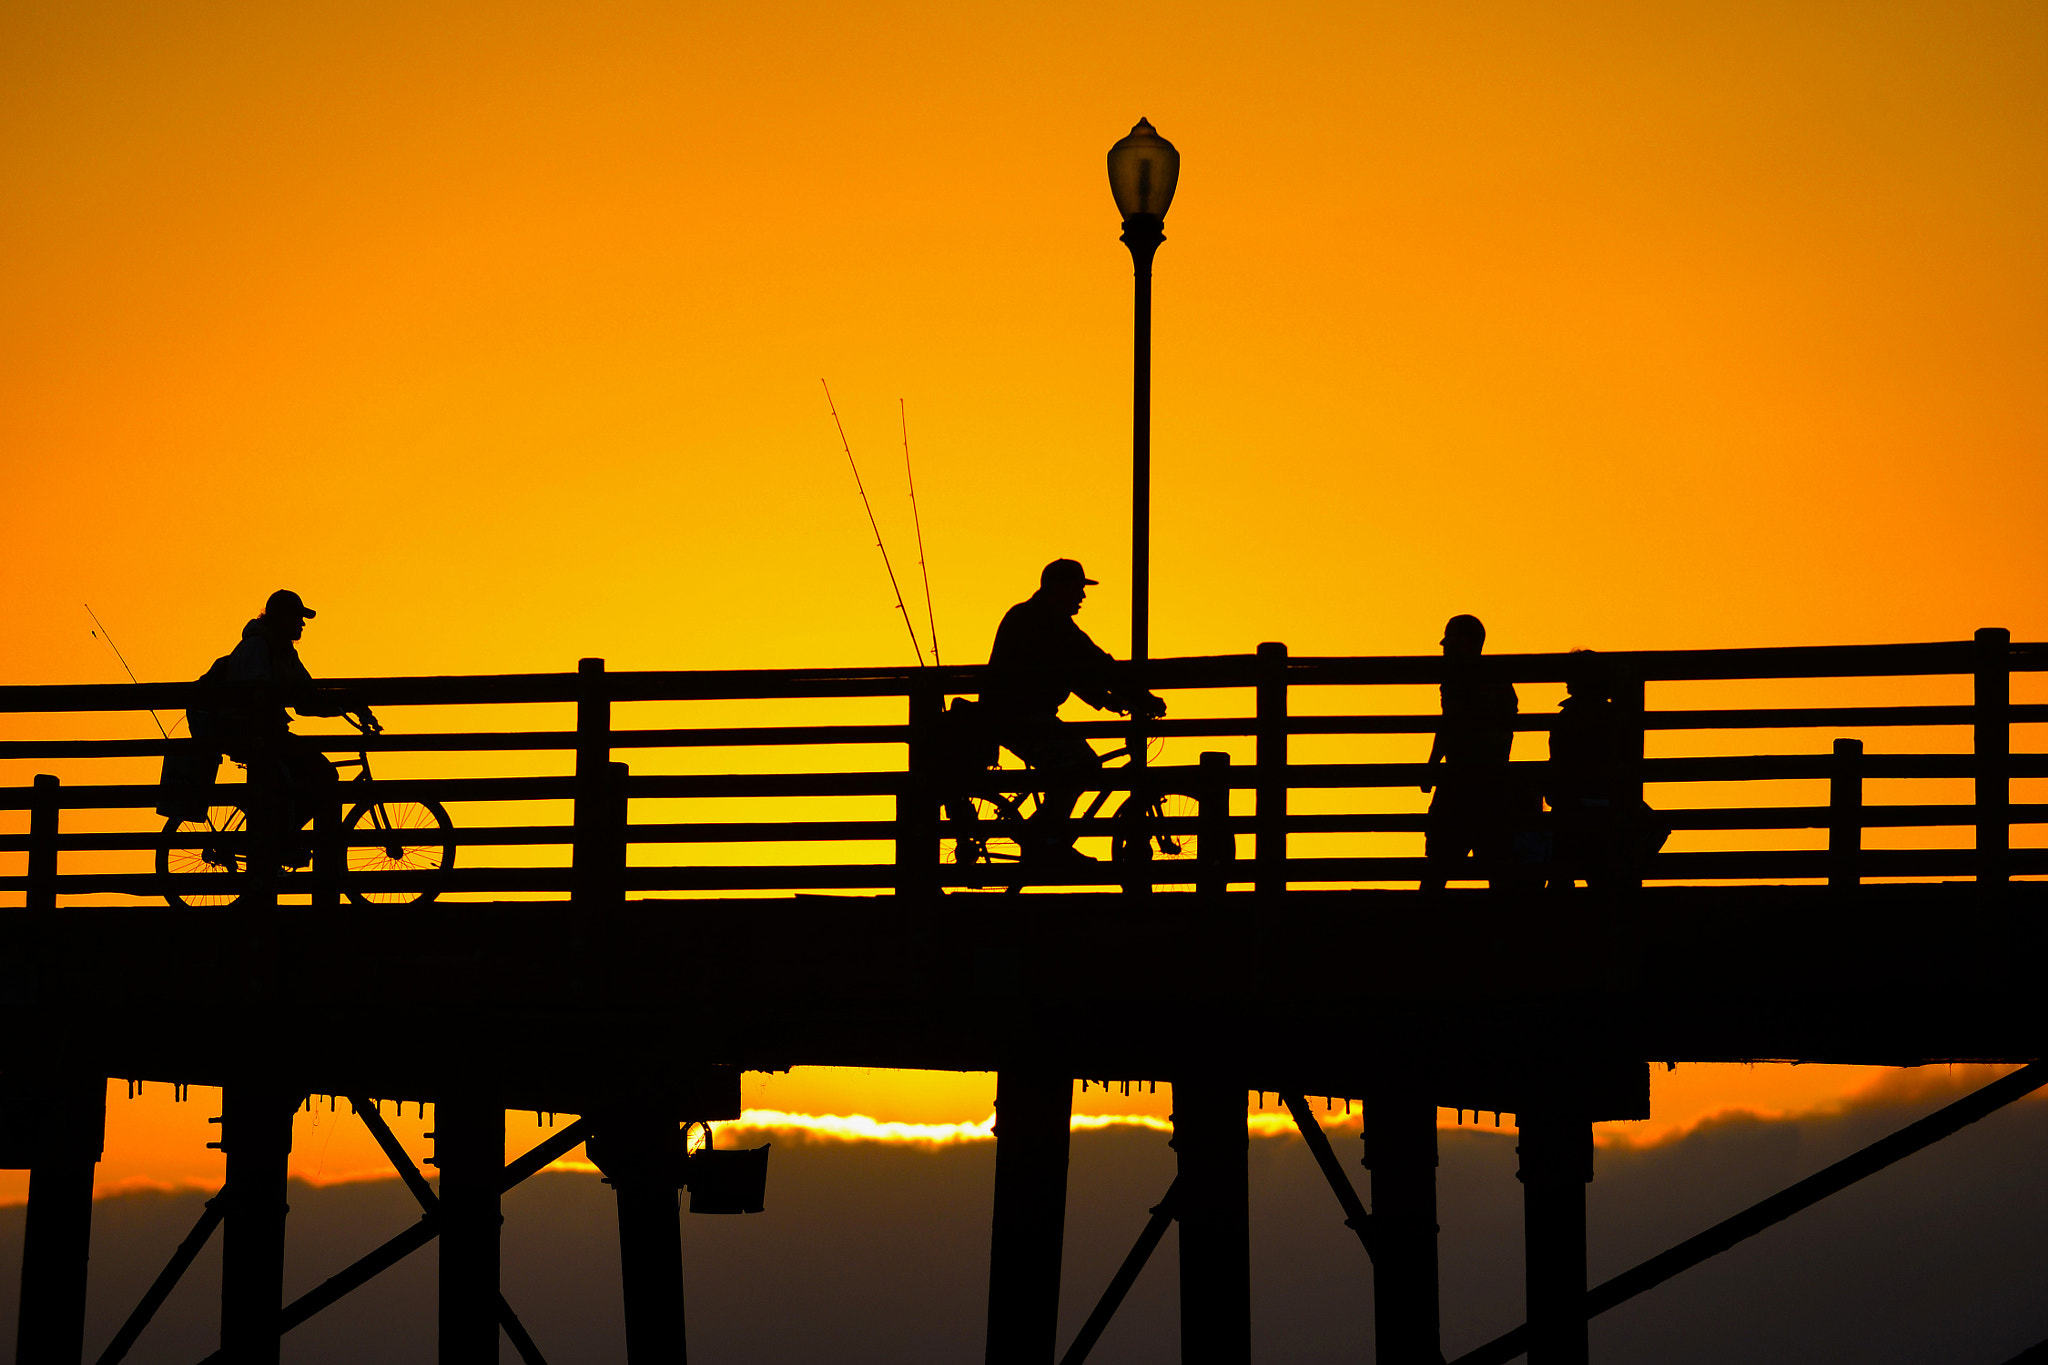 Photograph Fishermen on Bikes at Sunset on the Oceanside Pier - June 4, 2013 by Rich Cruse on 500px